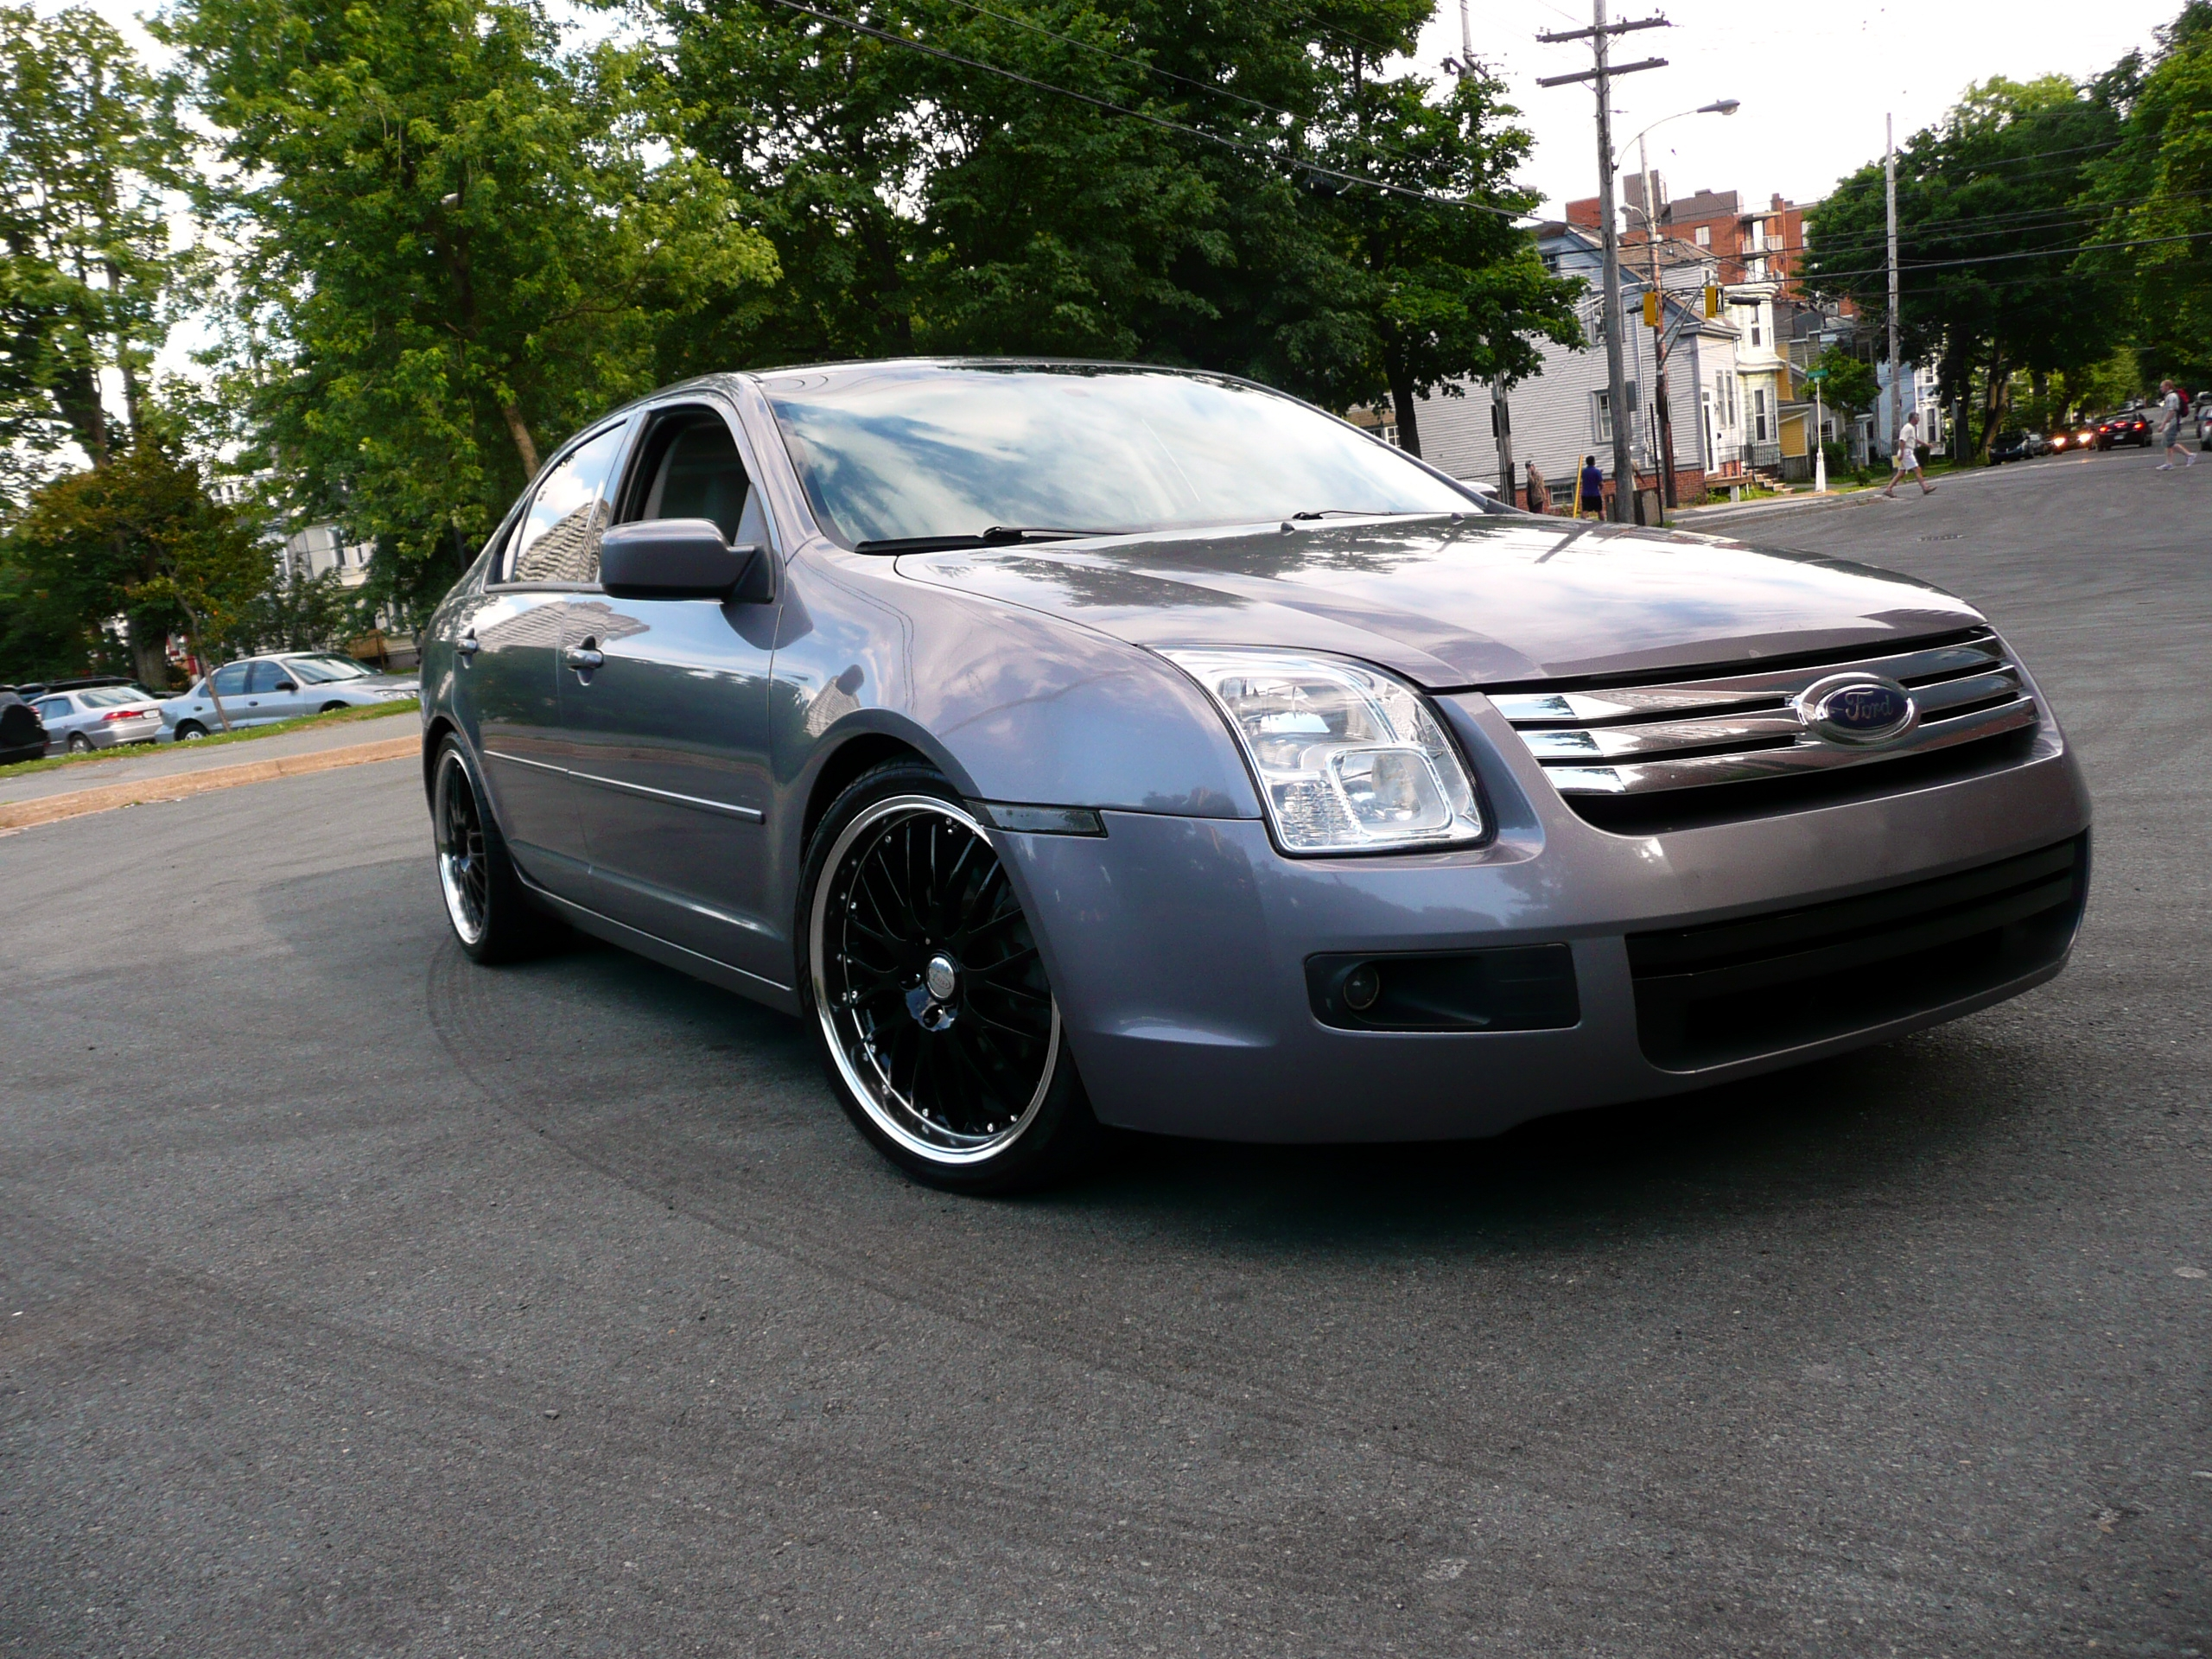 2008 Ford Fusion Body Kit ford fusion 2007 - Auto-Database.com